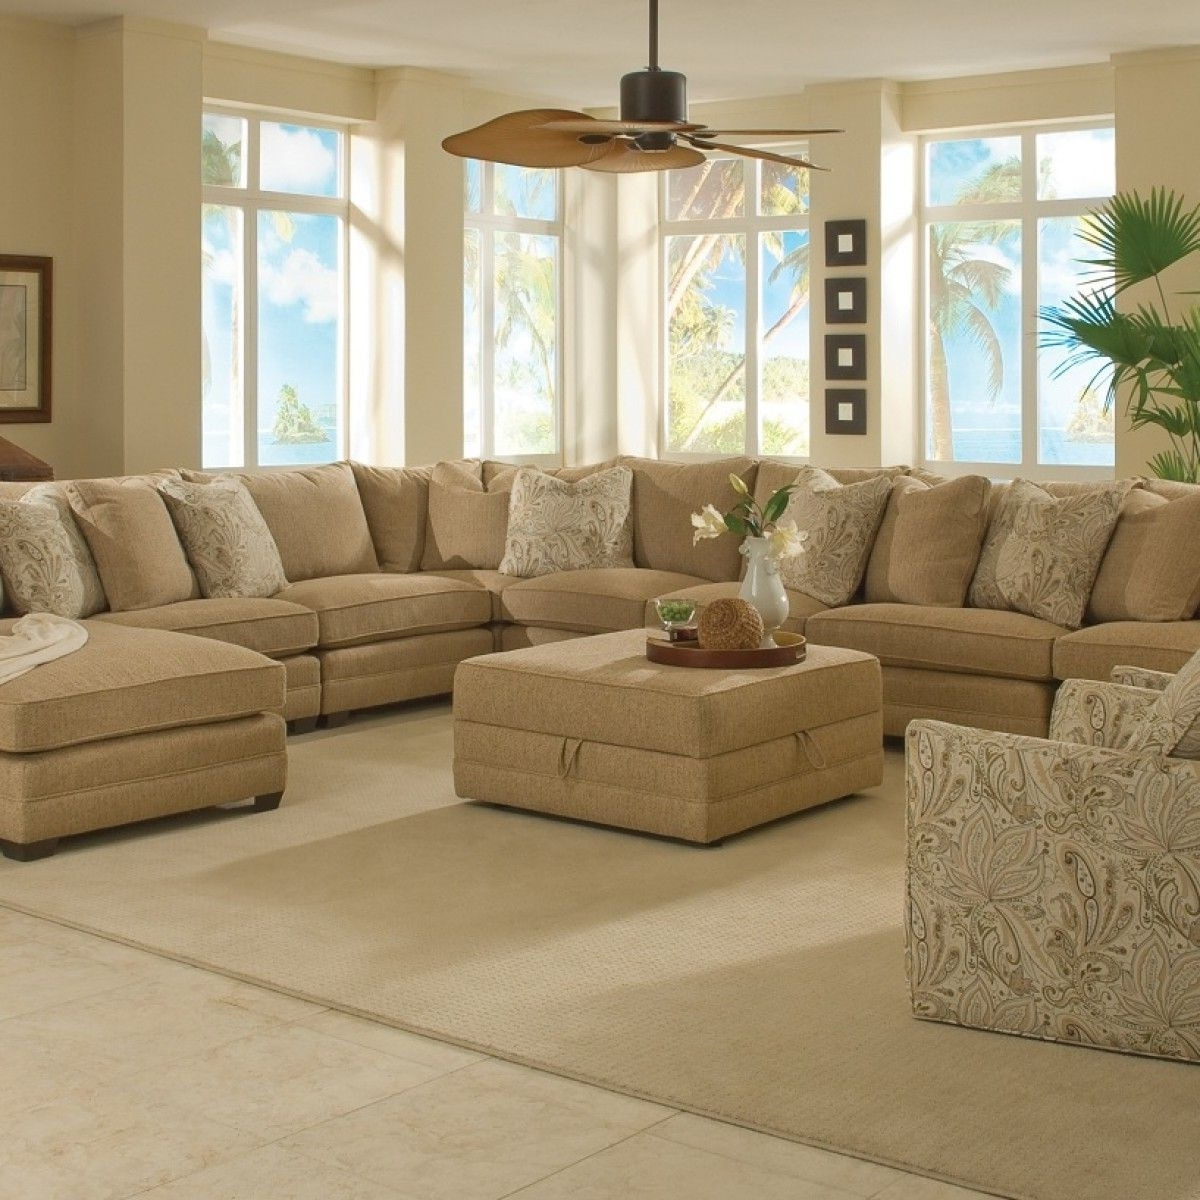 Most Recently Released Media Room Sectional Sofas Intended For Magnificent Large Sectional Sofas (View 10 of 15)